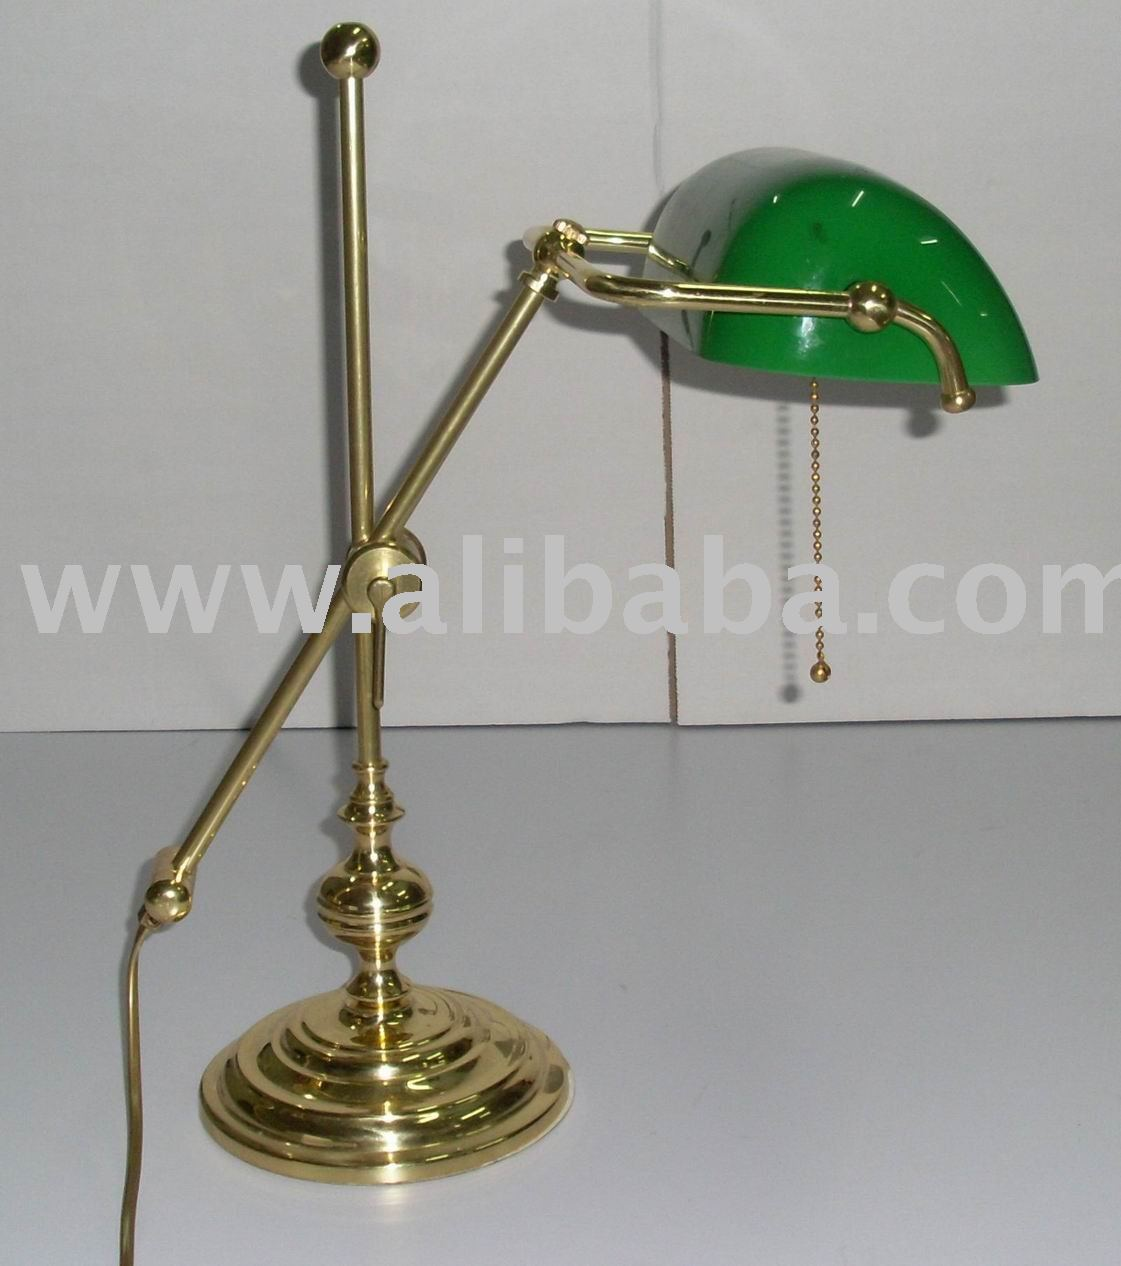 Green Bankers Lamp Wholesale, Bankers Lamp Suppliers   Alibaba